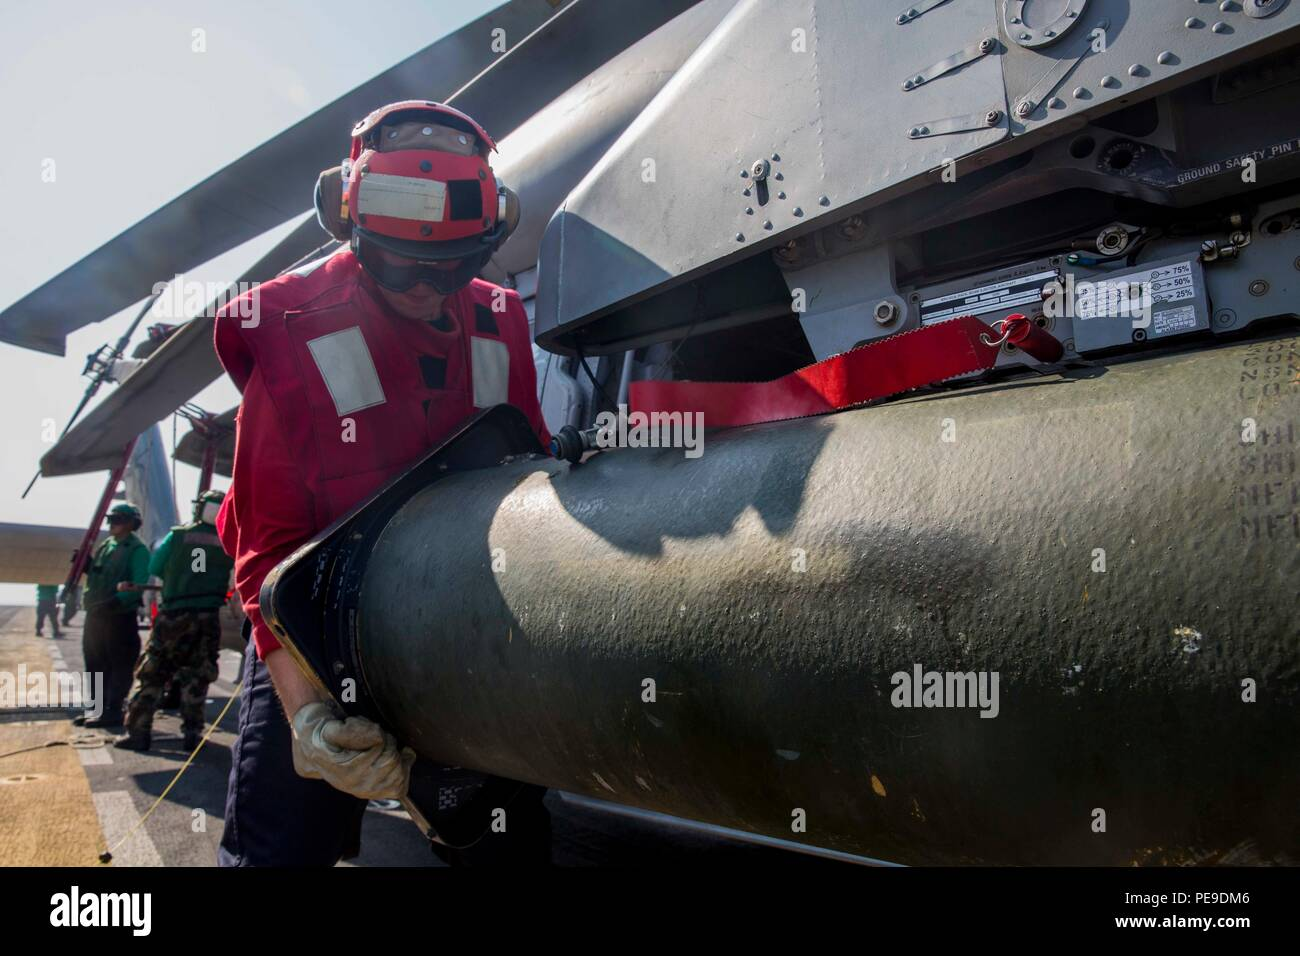 151114-N-KW492-033 GULF OF ADEN (Nov. 14, 2015) Aviation Ordnanceman 3rd Class Matthew Maikell, from Spring Town, Texas, takes a shield off of a pod of inert 2.75 inch 'Mighty Mouse' rockets attached to an MH-60S Seahawk aboard the amphibious assault ship USS Kearsarge (LHD 3). Kearsarge is the flagship for the Kearsarge Amphibious Ready Group (ARG) and, with the embarked 26th Marine Expeditionary Unit (MEU), is deployed in support of maritime security operations and theater security cooperation efforts in the U.S. 5th Fleet area of operations. (U.S. Navy photo by Mass Communication Specialist - Stock Image